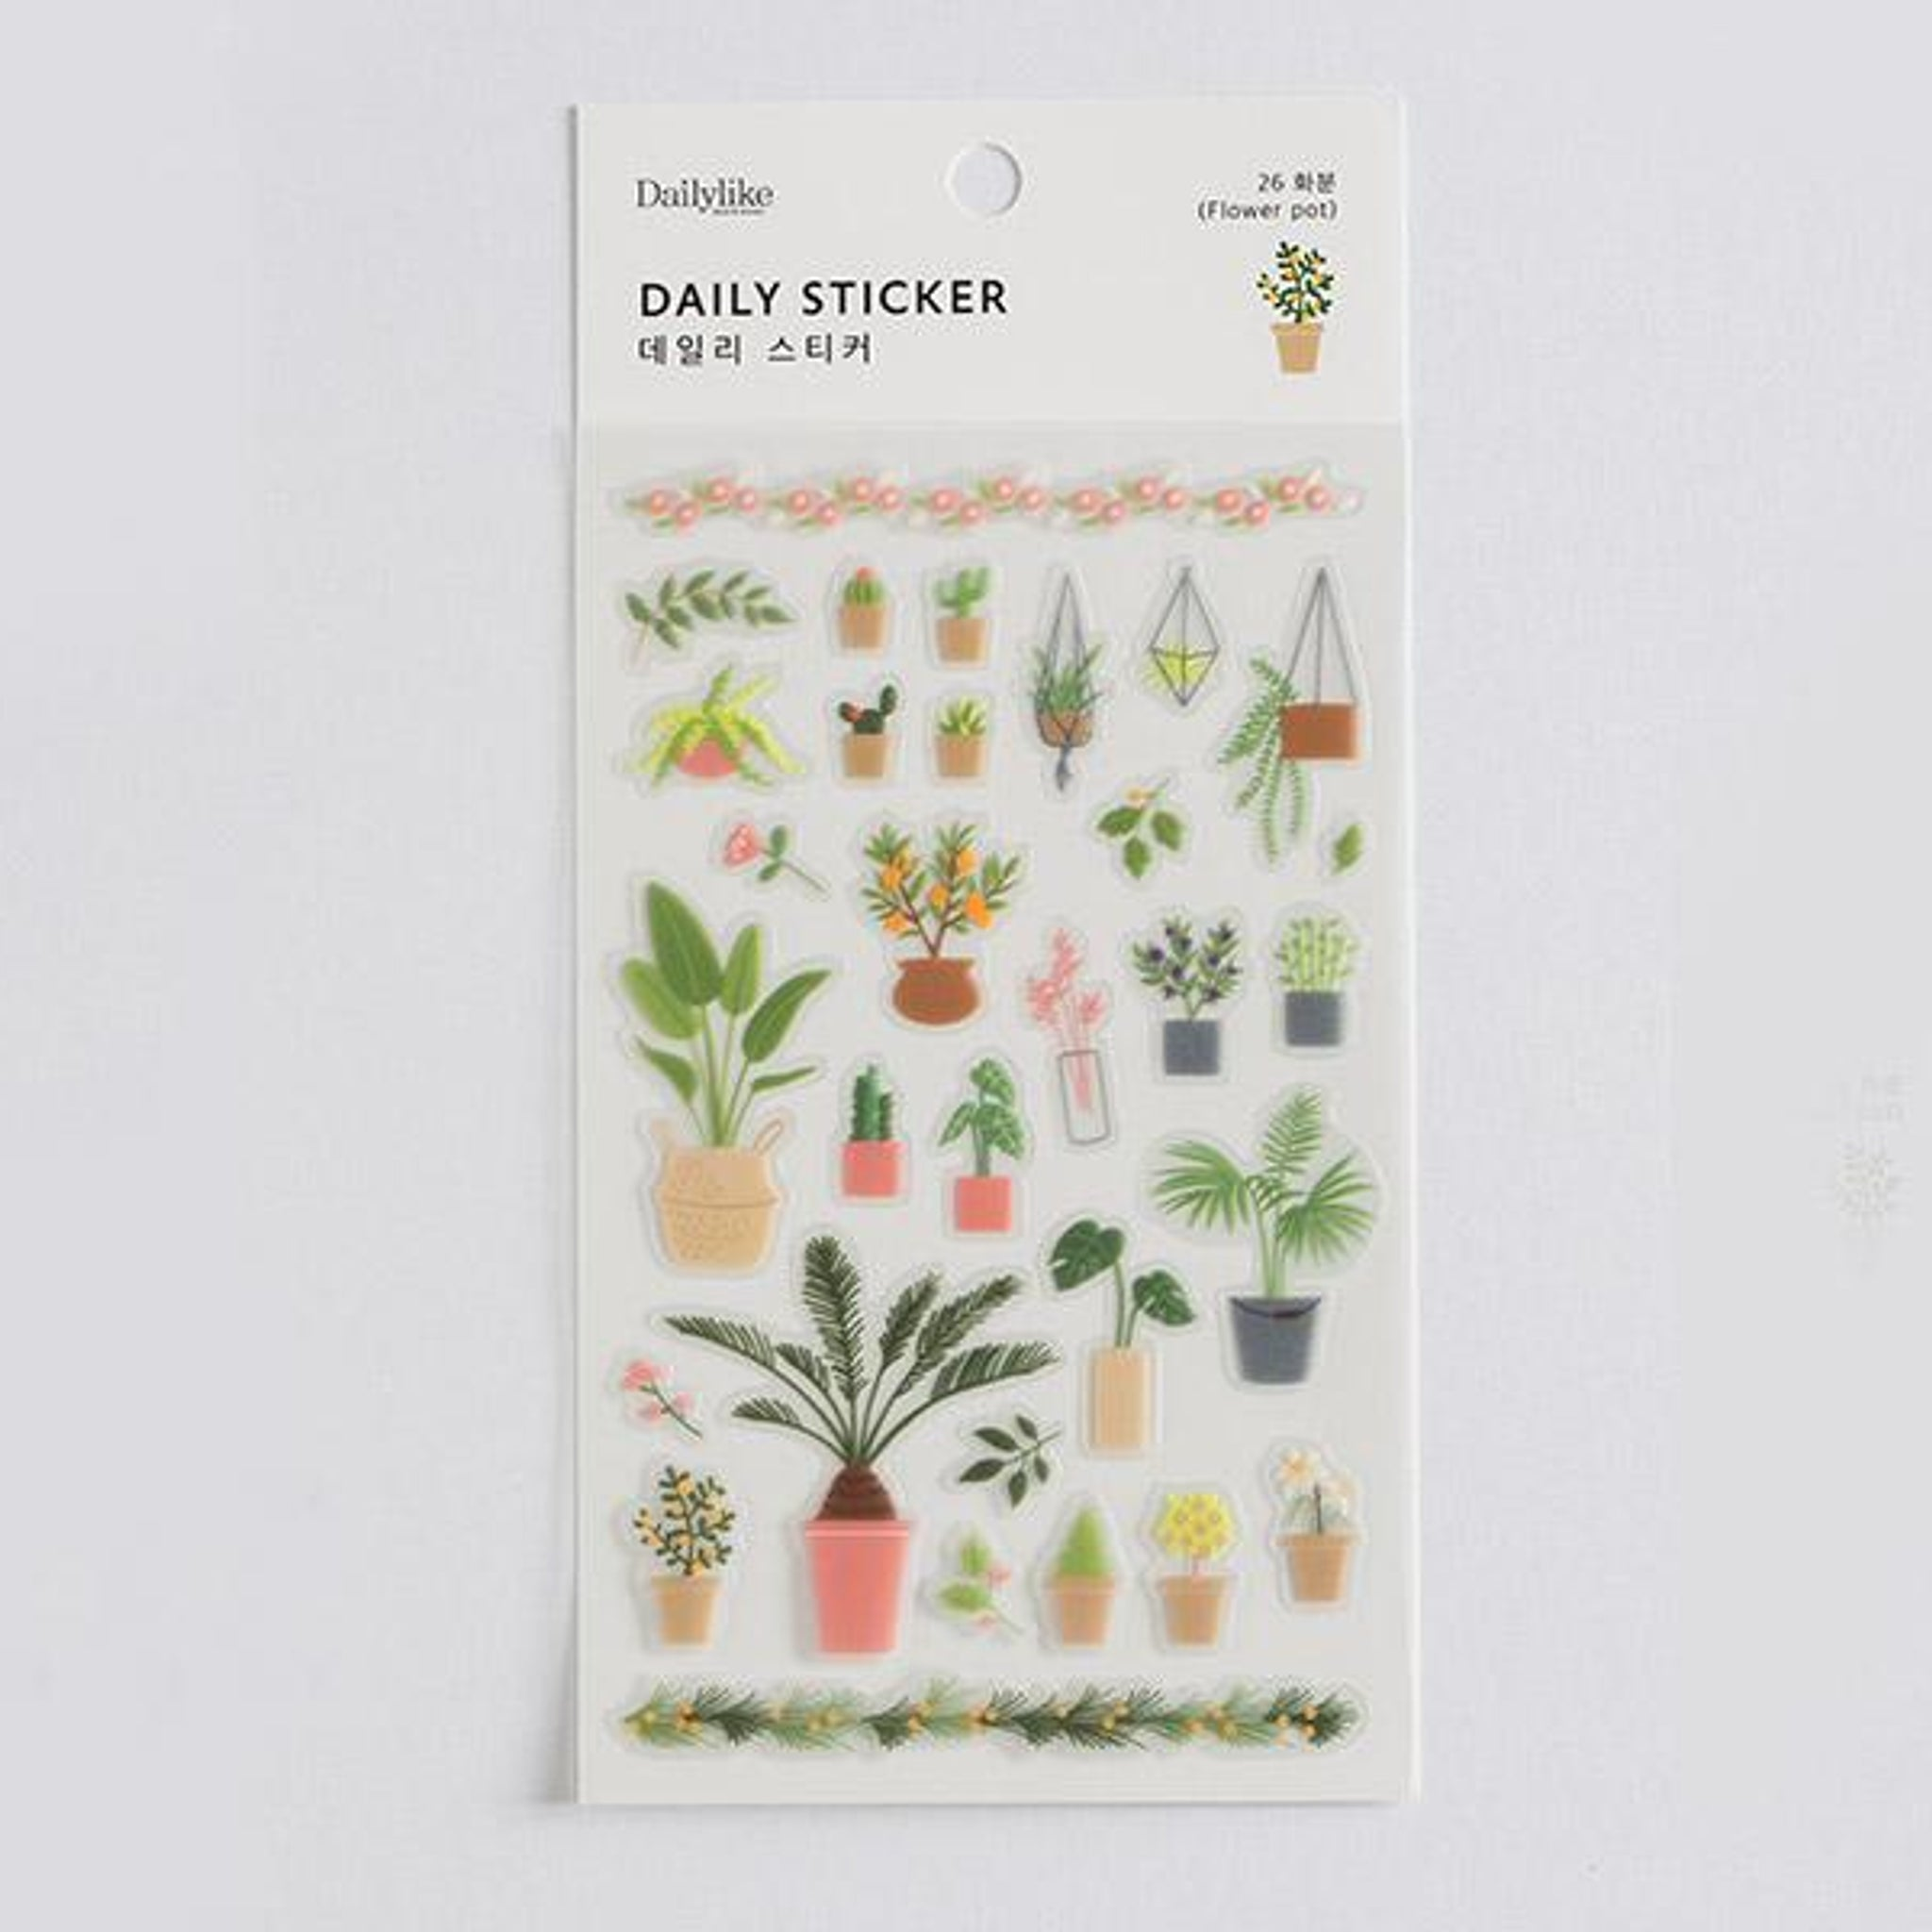 DailyLike Daily sticker - 26 plant